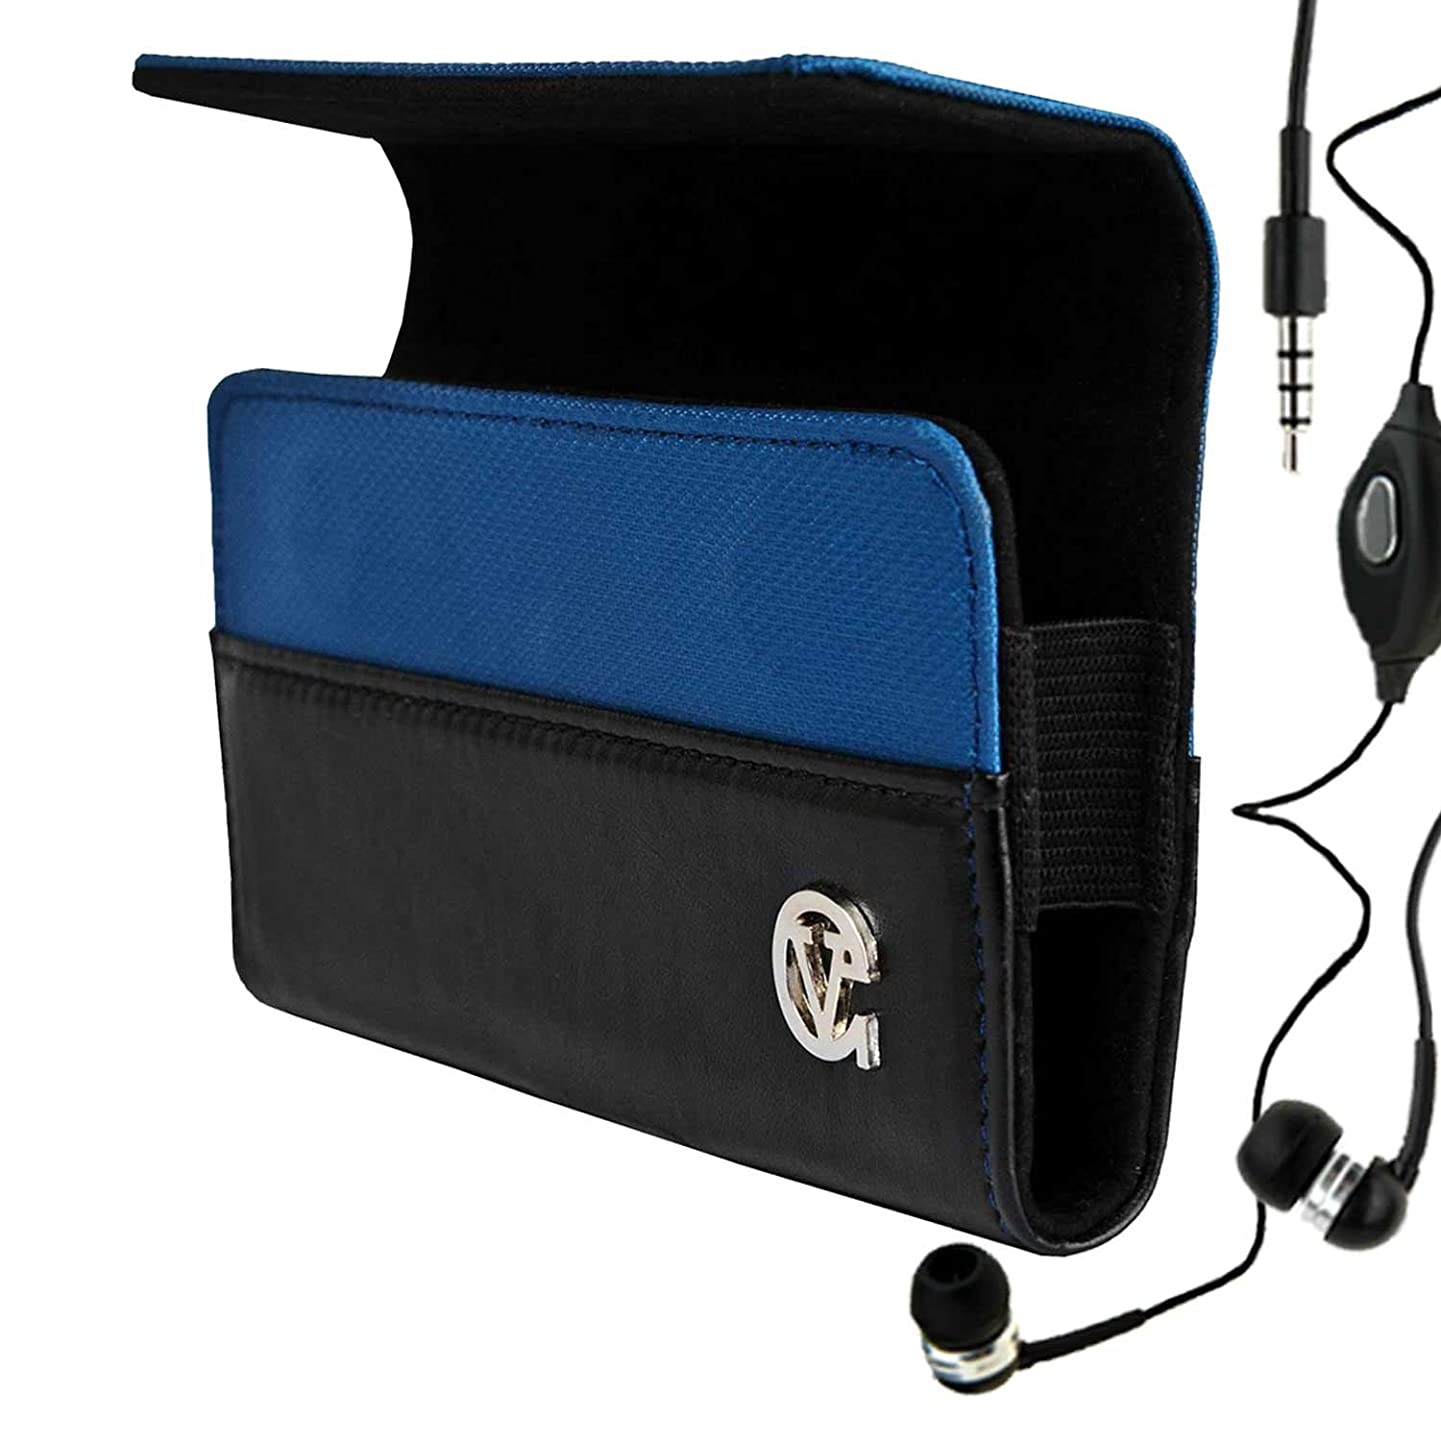 Portola Blue with Luxury Lining Hard Cover Samsung Infuse 4G Leather Case for Samsung Infuse 4G Android Phone (All Models , AT&T , Unlocked Phone Smartphone i997 ) + Compatible Samsung Infuse 4G Earbud Earphones with Microphone